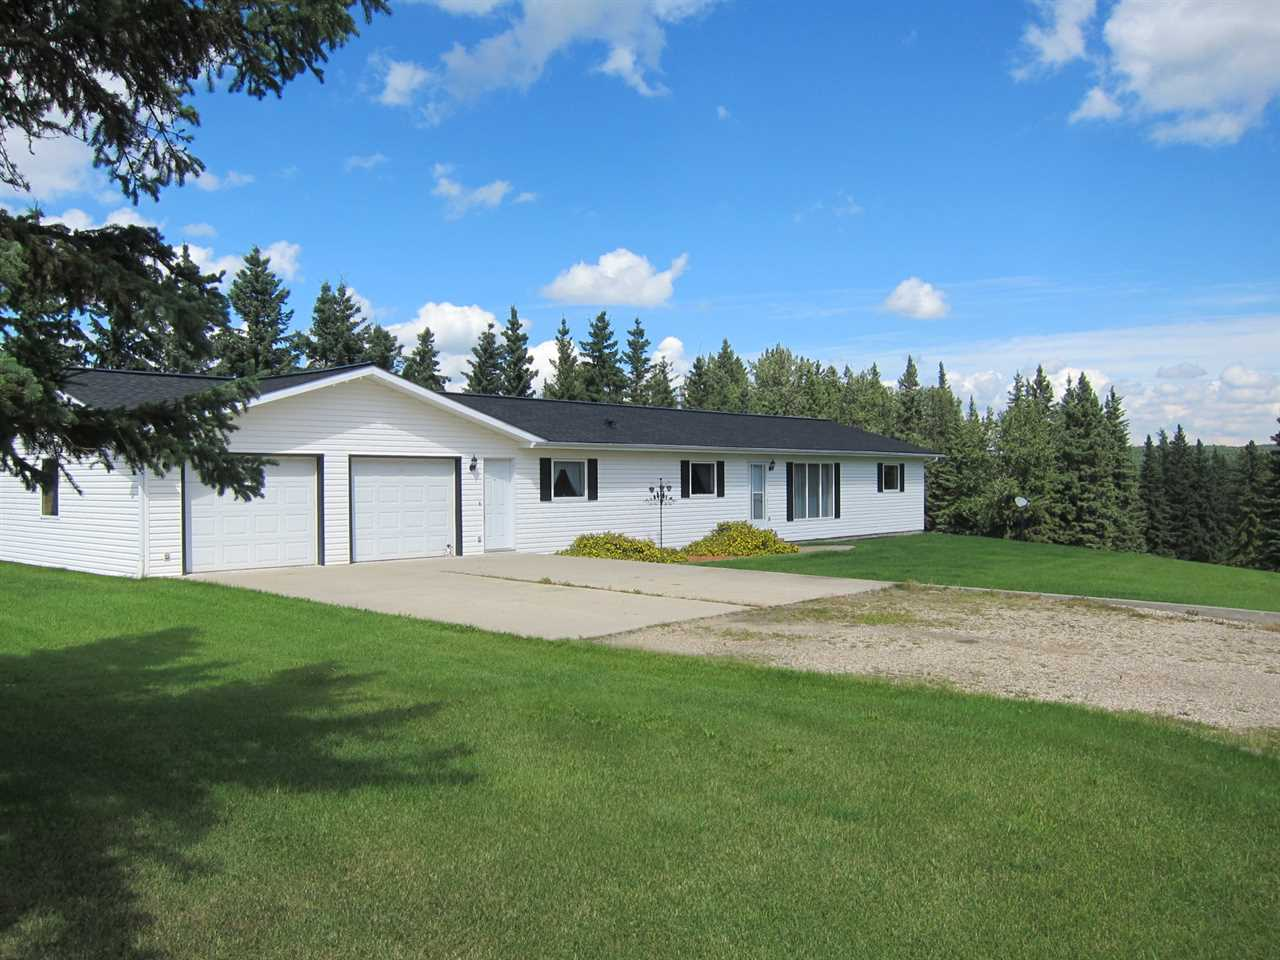 Main Photo: 53204 Rge Rd 70 Parkland County: Rural Parkland County Manufactured Home for sale : MLS® # E4076640